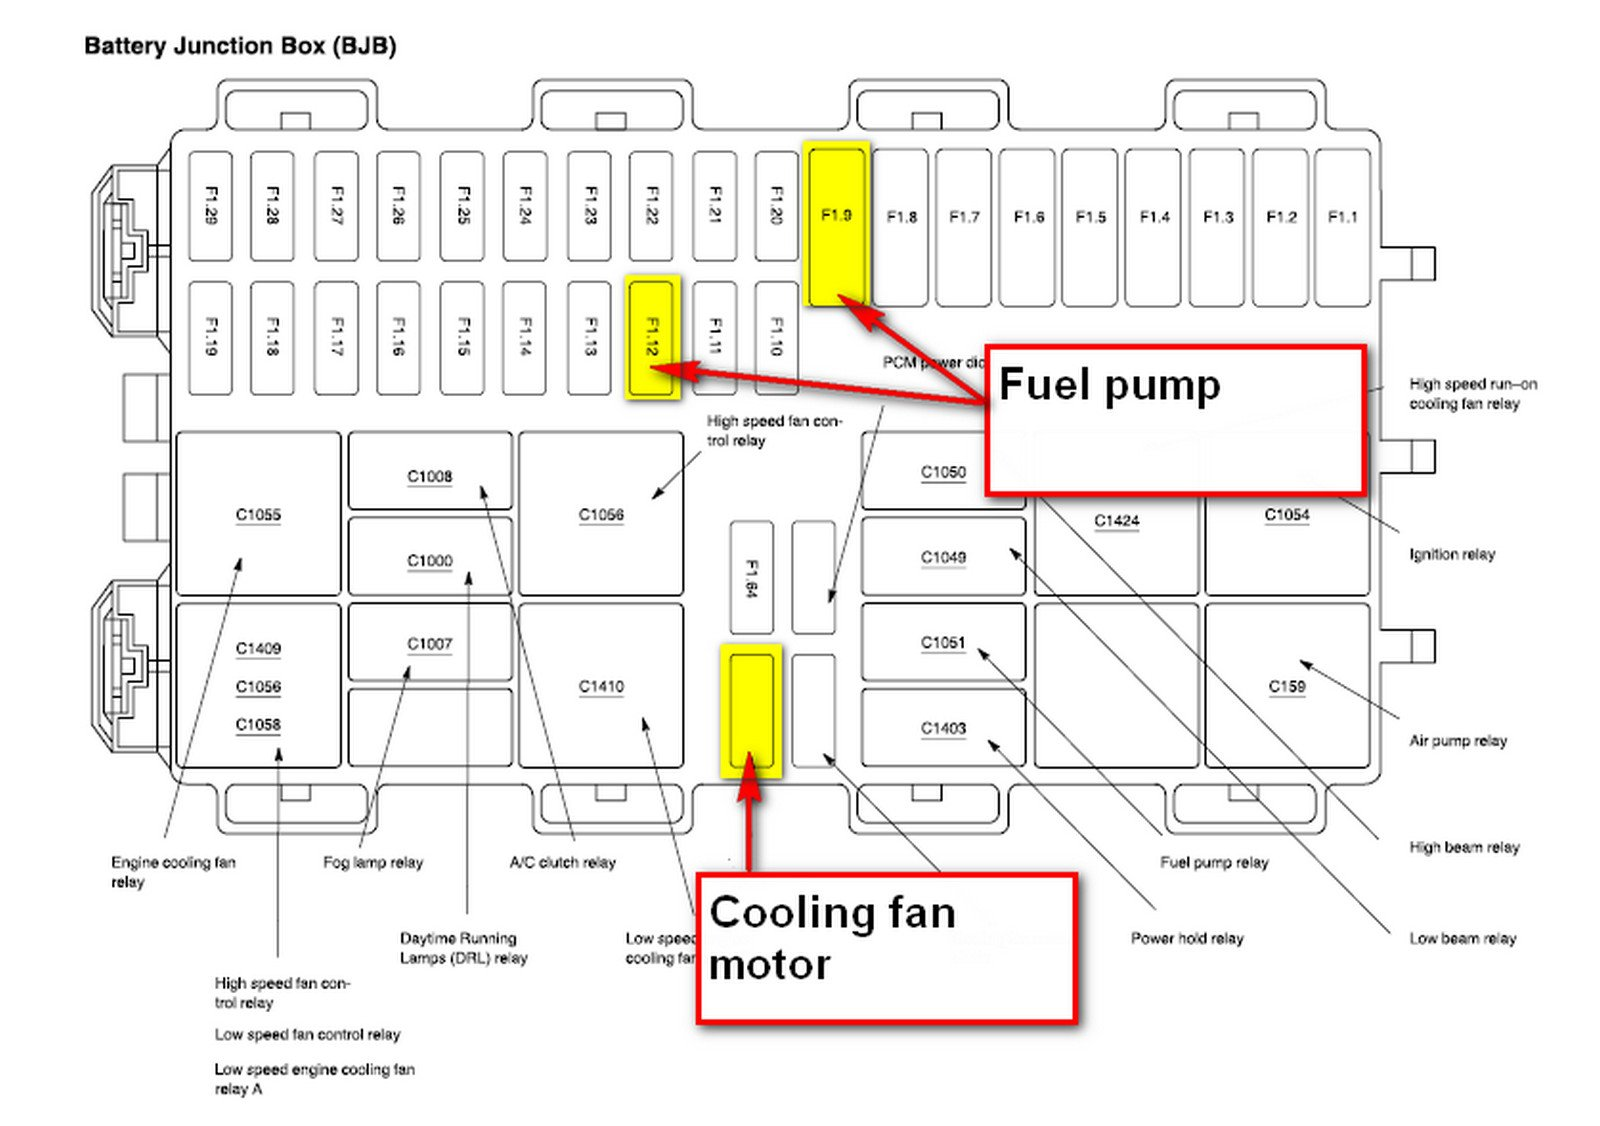 2014 ford focus sending unit wiring diagram location of fuel pump and cooling fan fuses